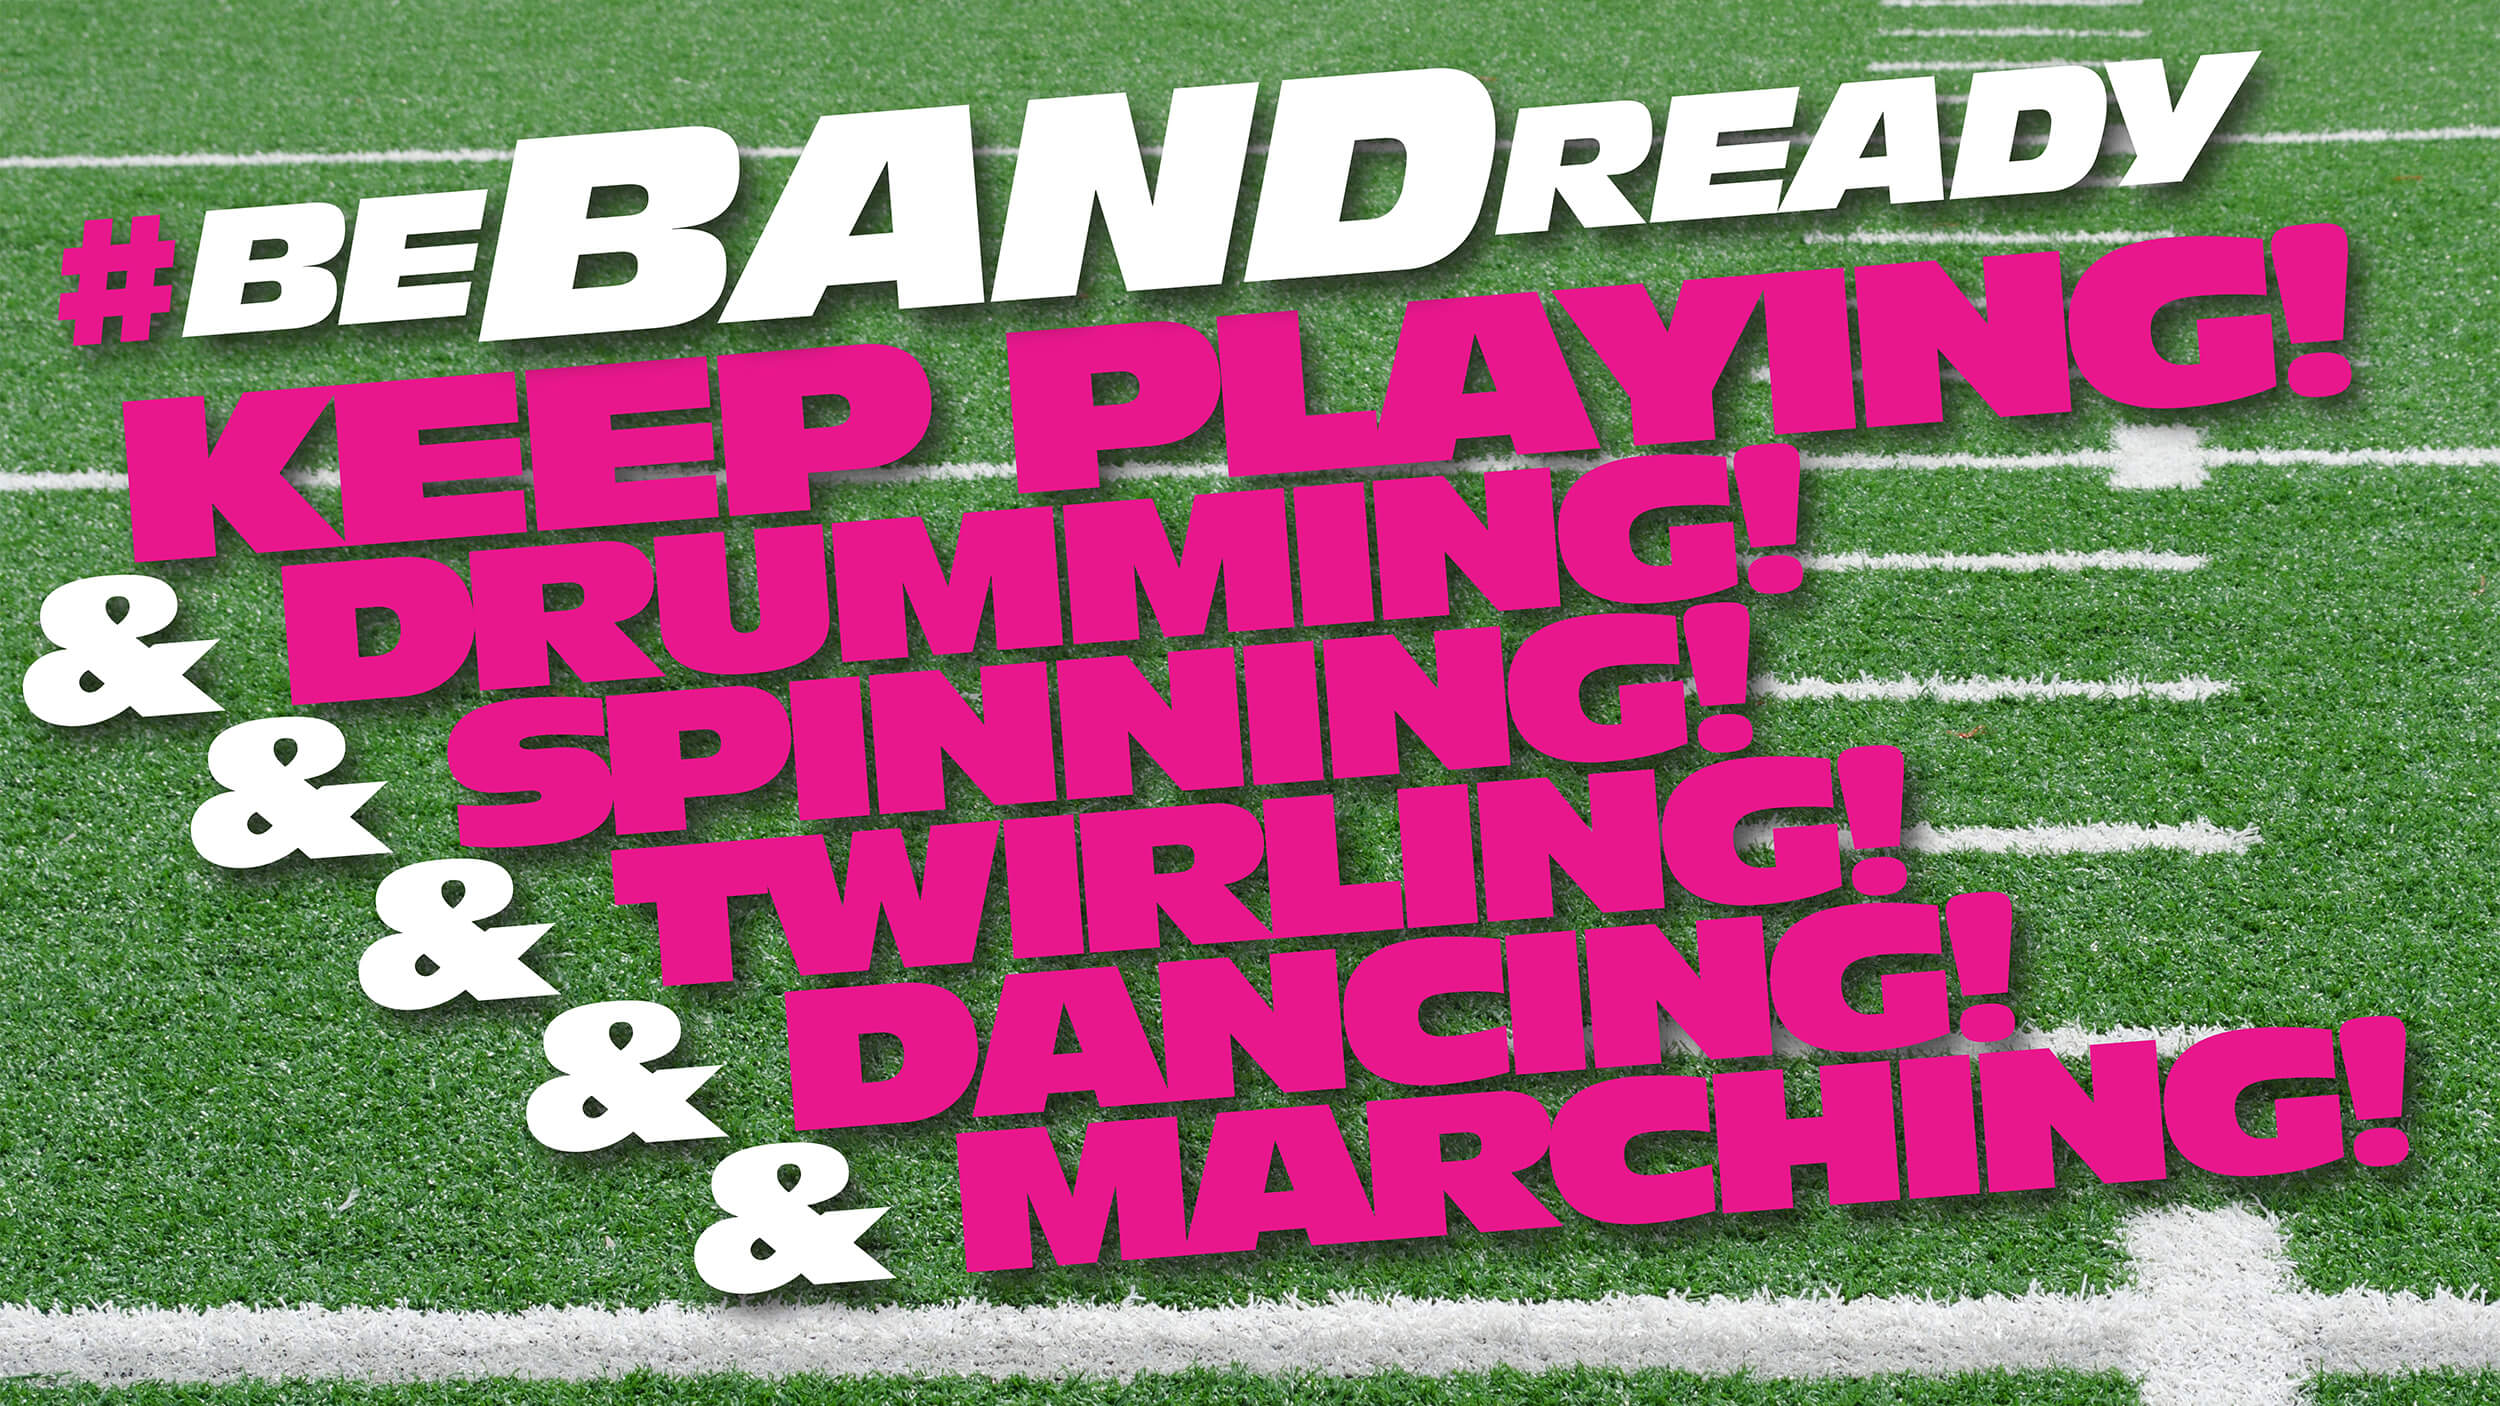 Global marching music community coming together to encourage students to #BeBandReady and #KeepPlaying